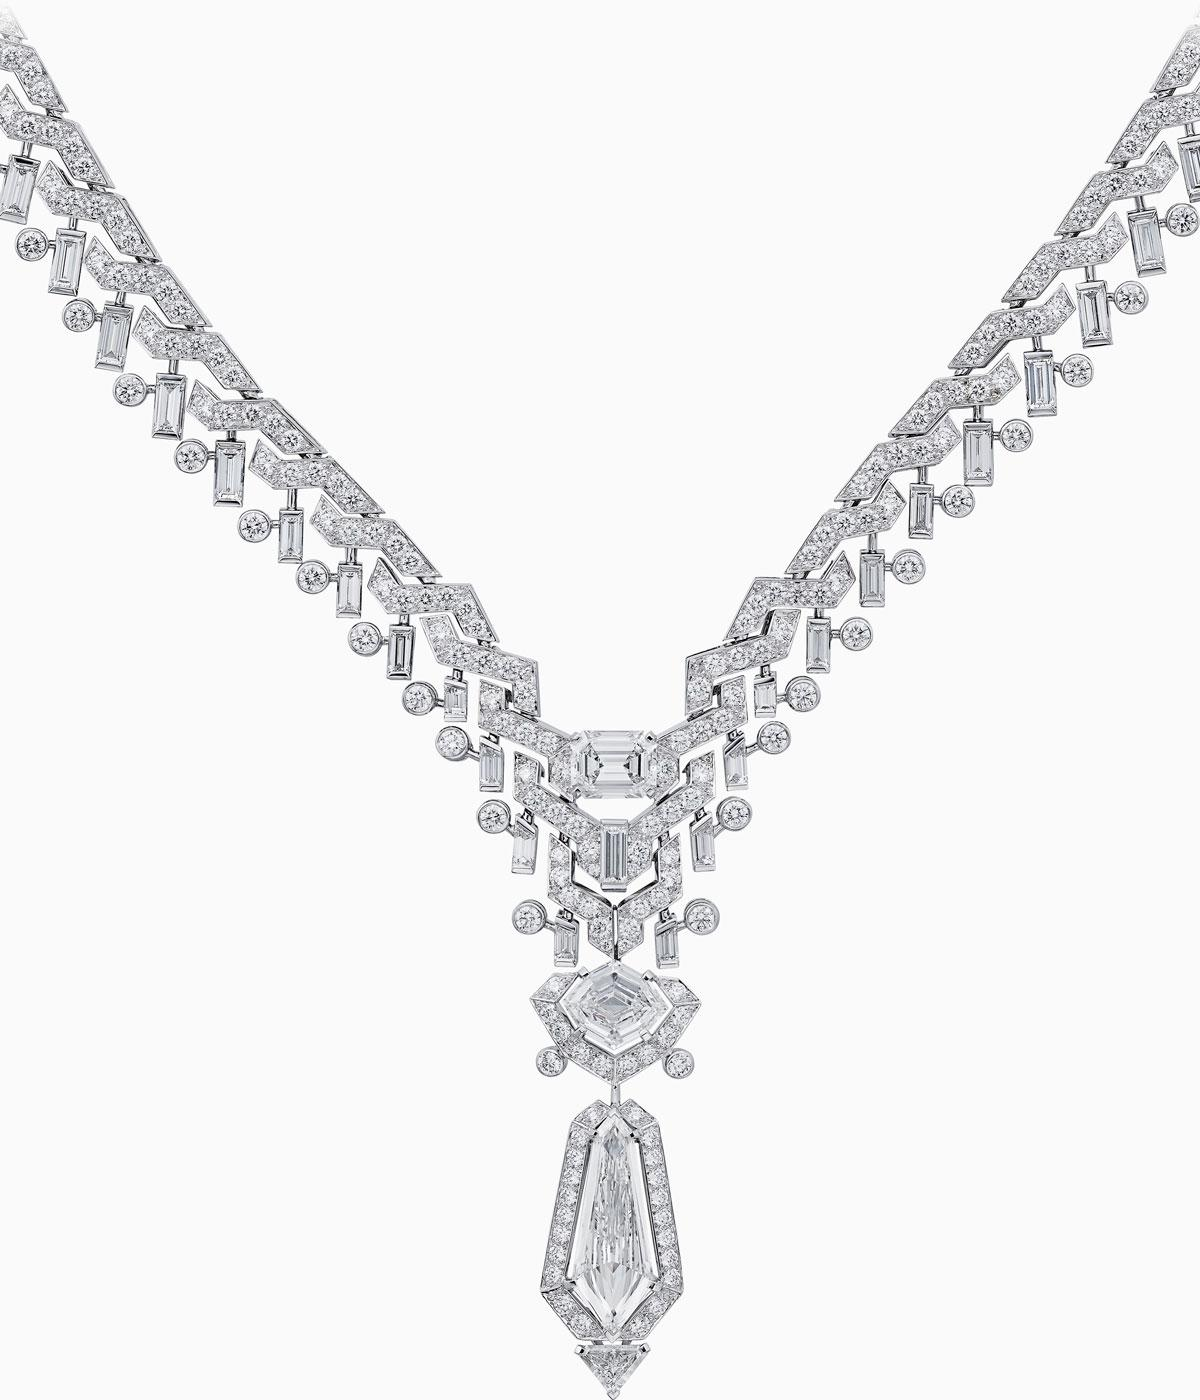 Cartiers new high jewellery at Paris Couture Wallpaper 1200x1400